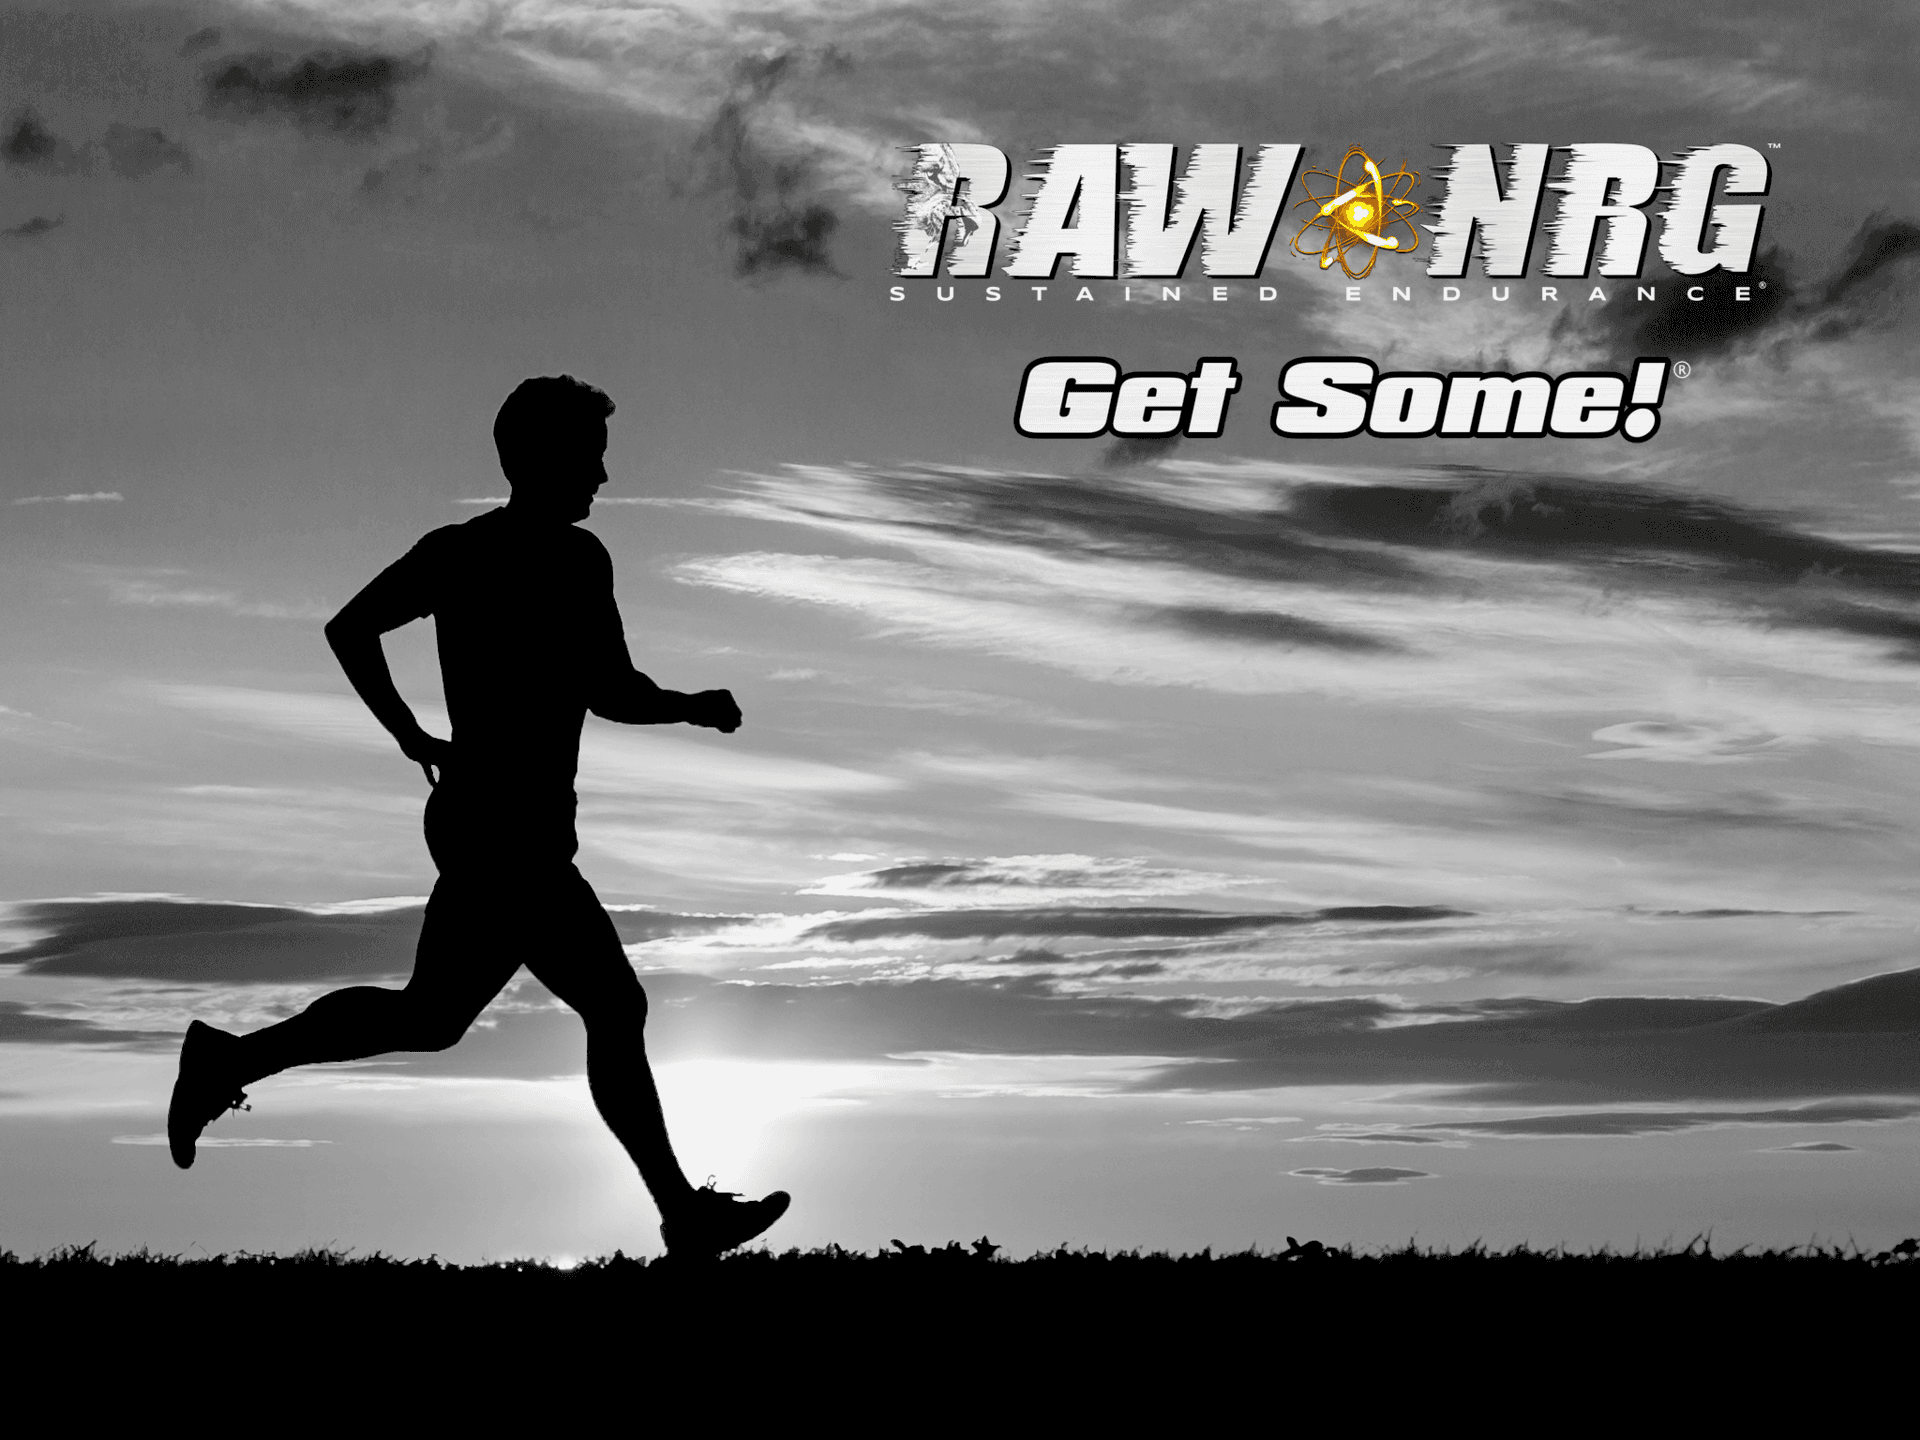 Nutrition for runners - RAW NRG